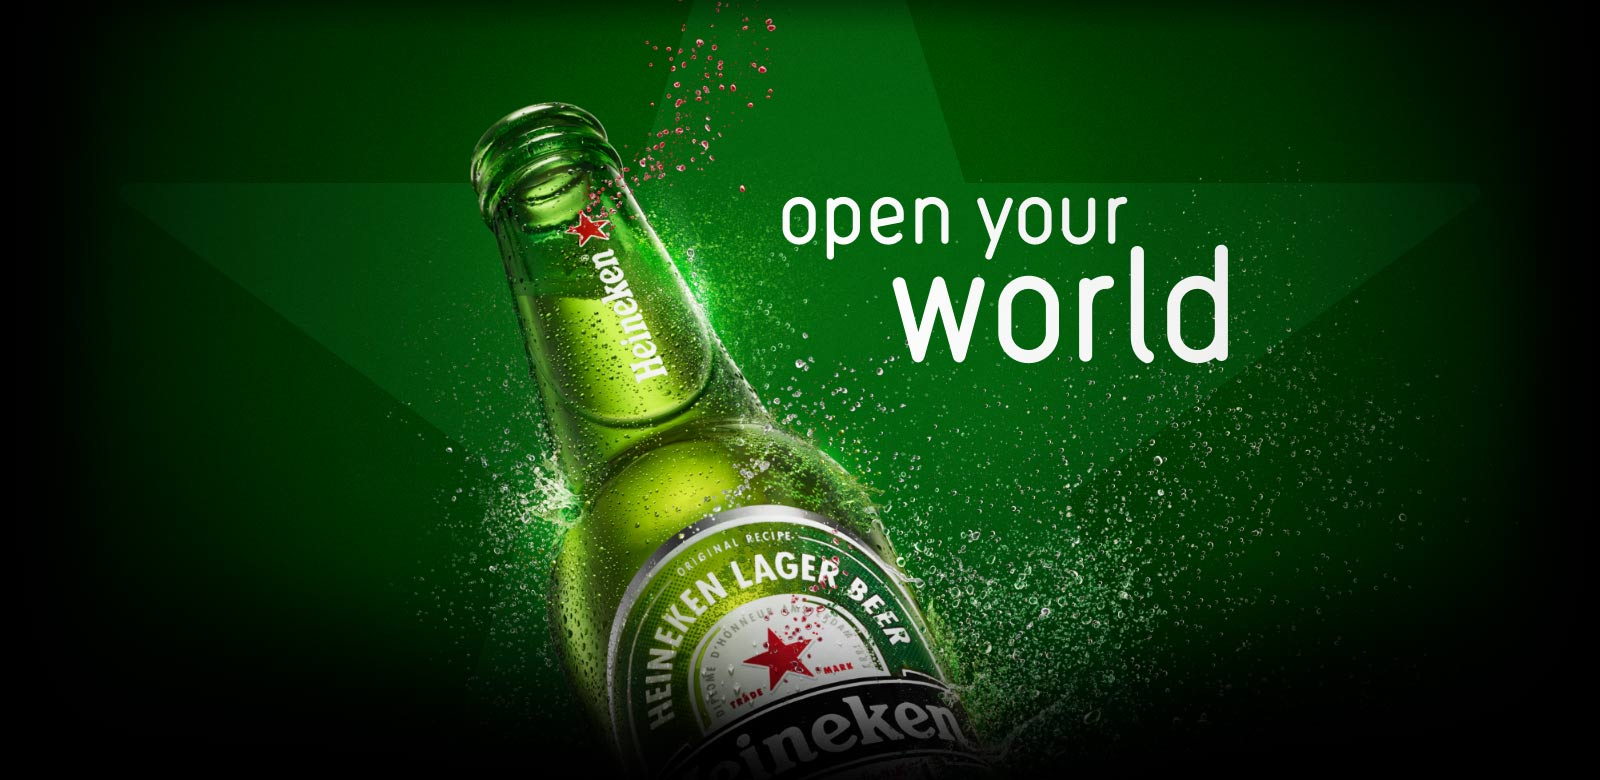 3d Halloween Live Wallpaper Heineken Open Your World Campaign